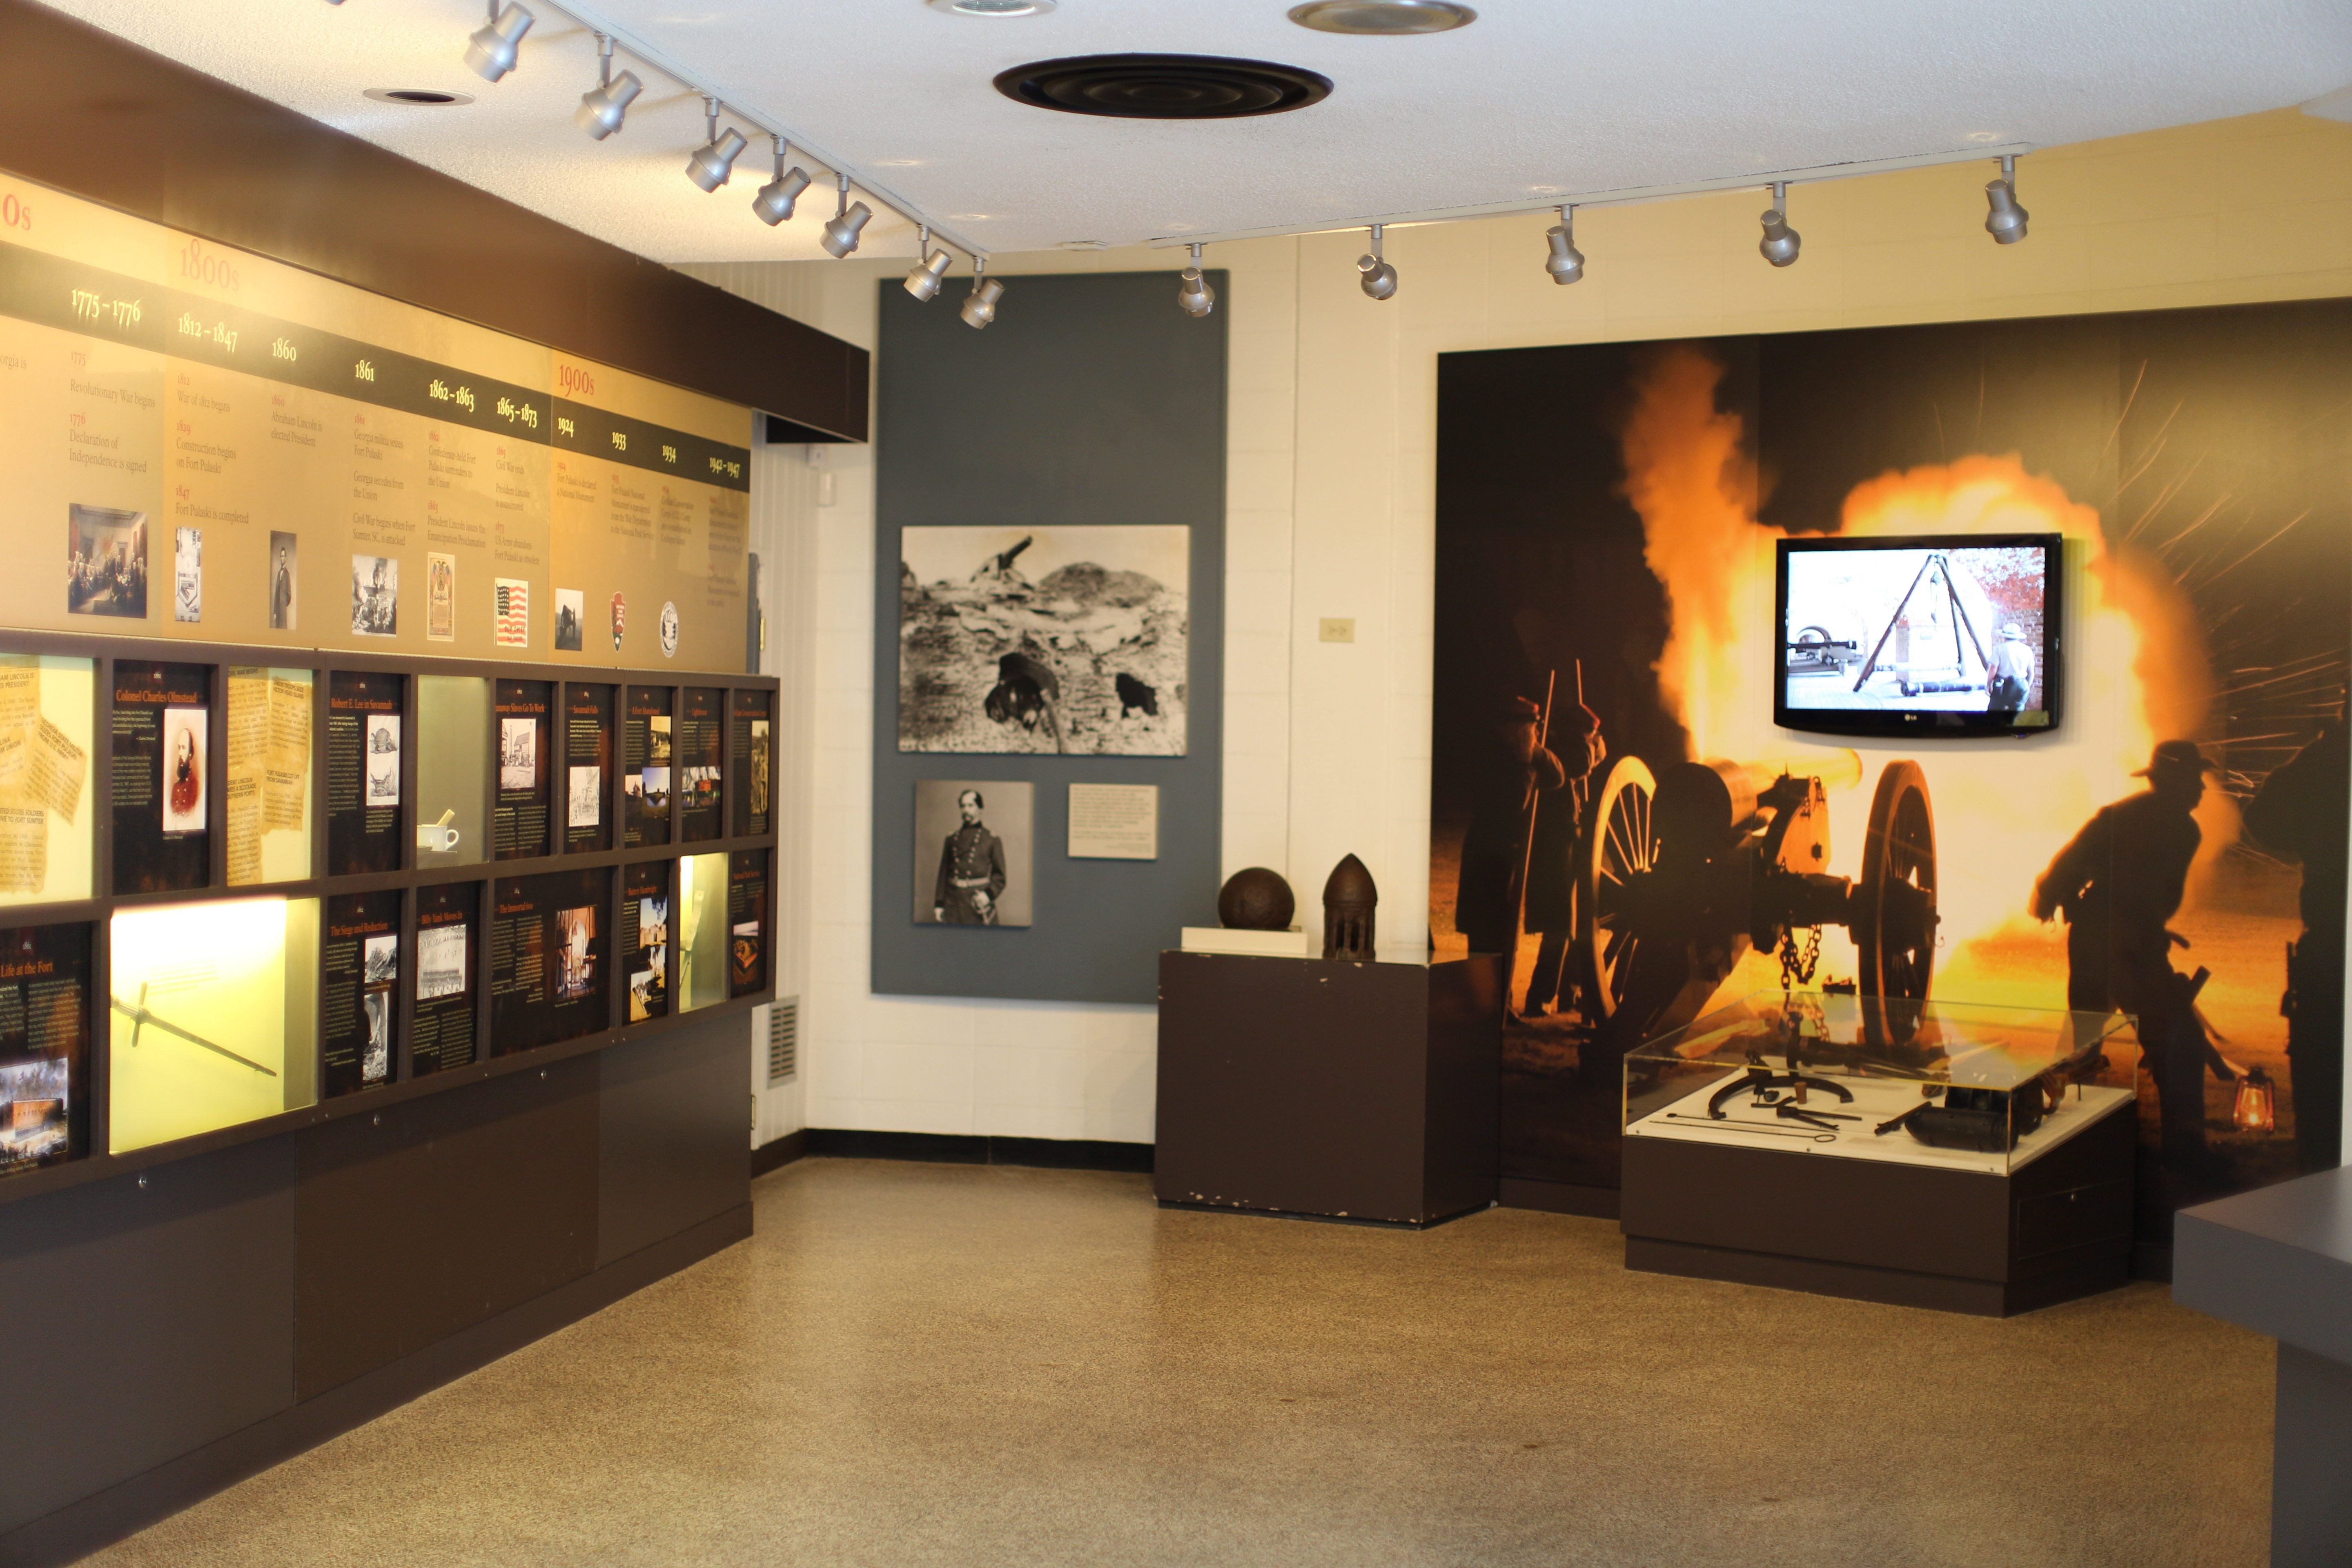 Fort Pulaski Visitor Center Exhibits